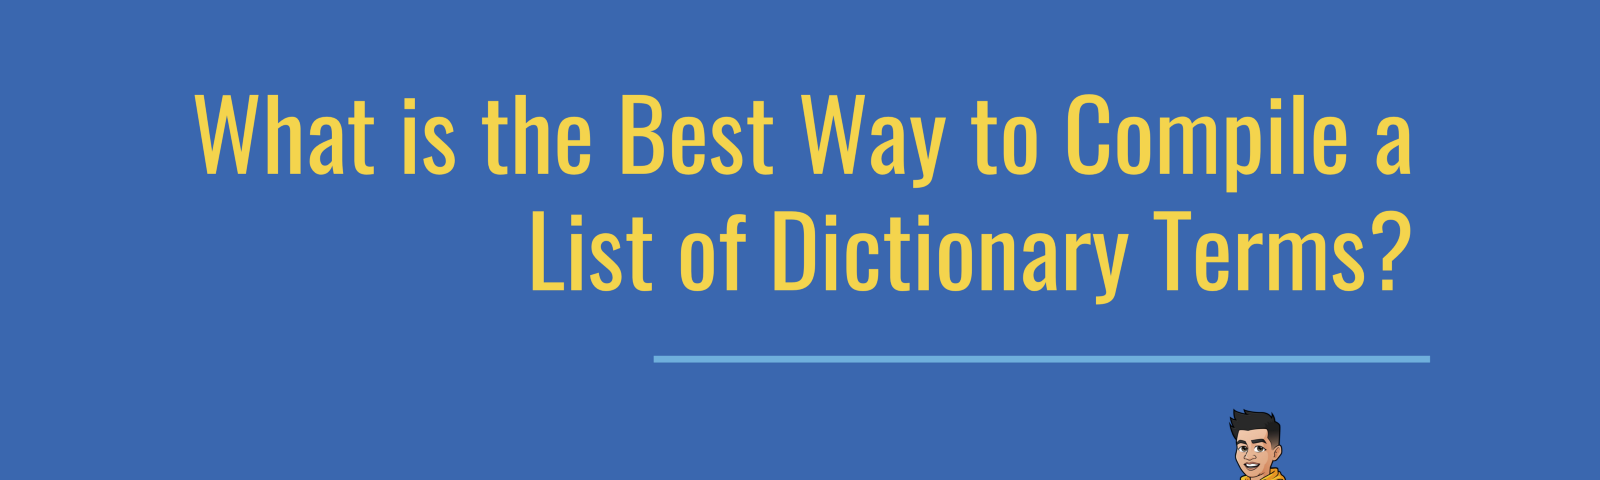 What is the Best Way to Compile a List of Dictionary Terms?